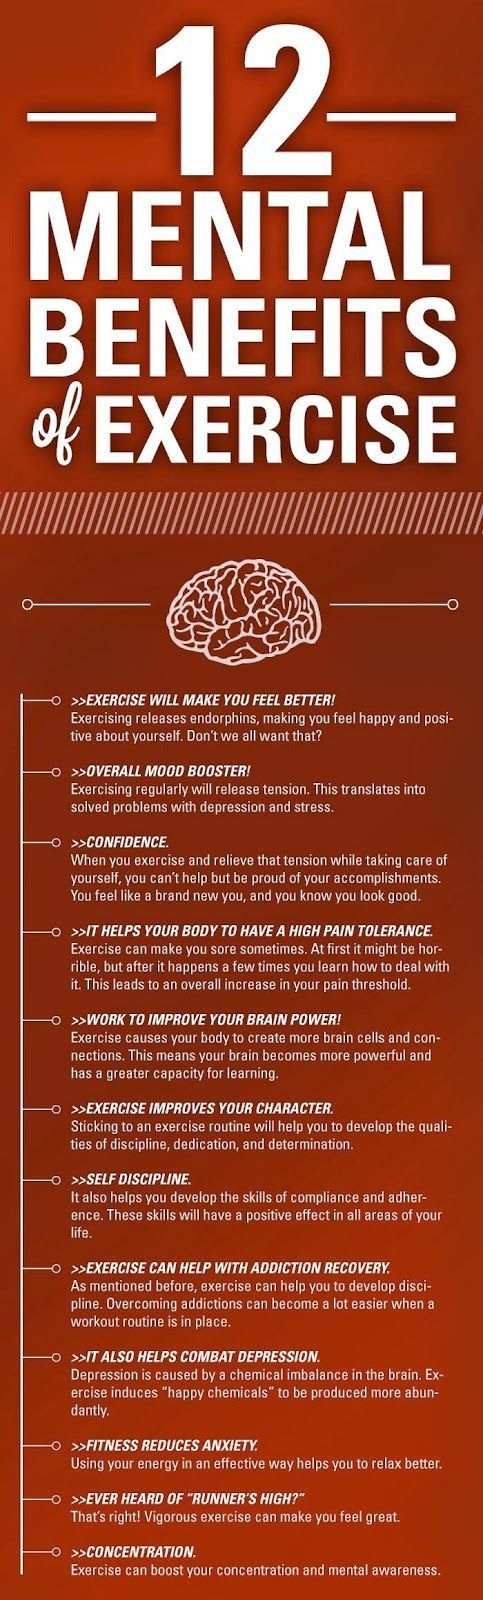 The mental benefits of physical excercise